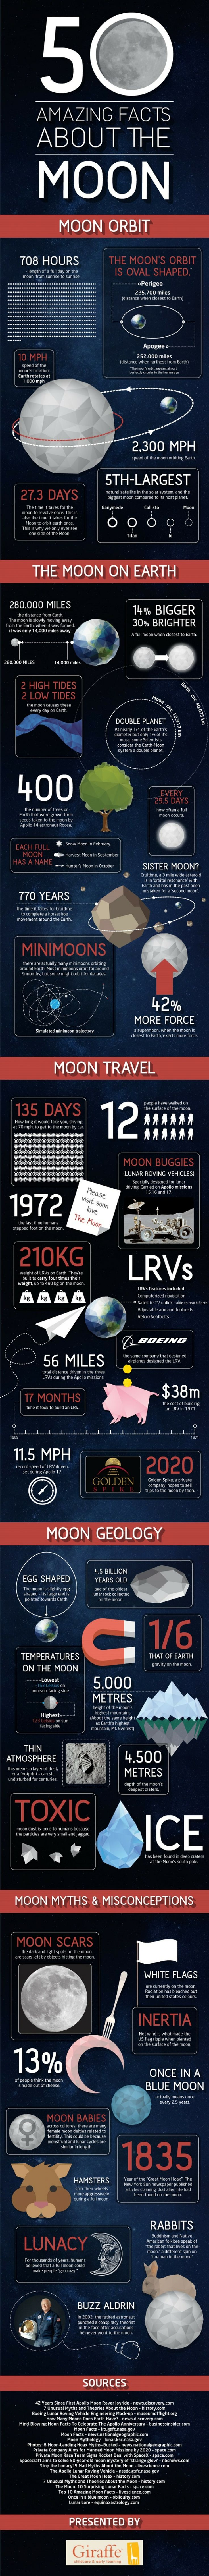 50 Amazing Facts About the Moon [Infographic]